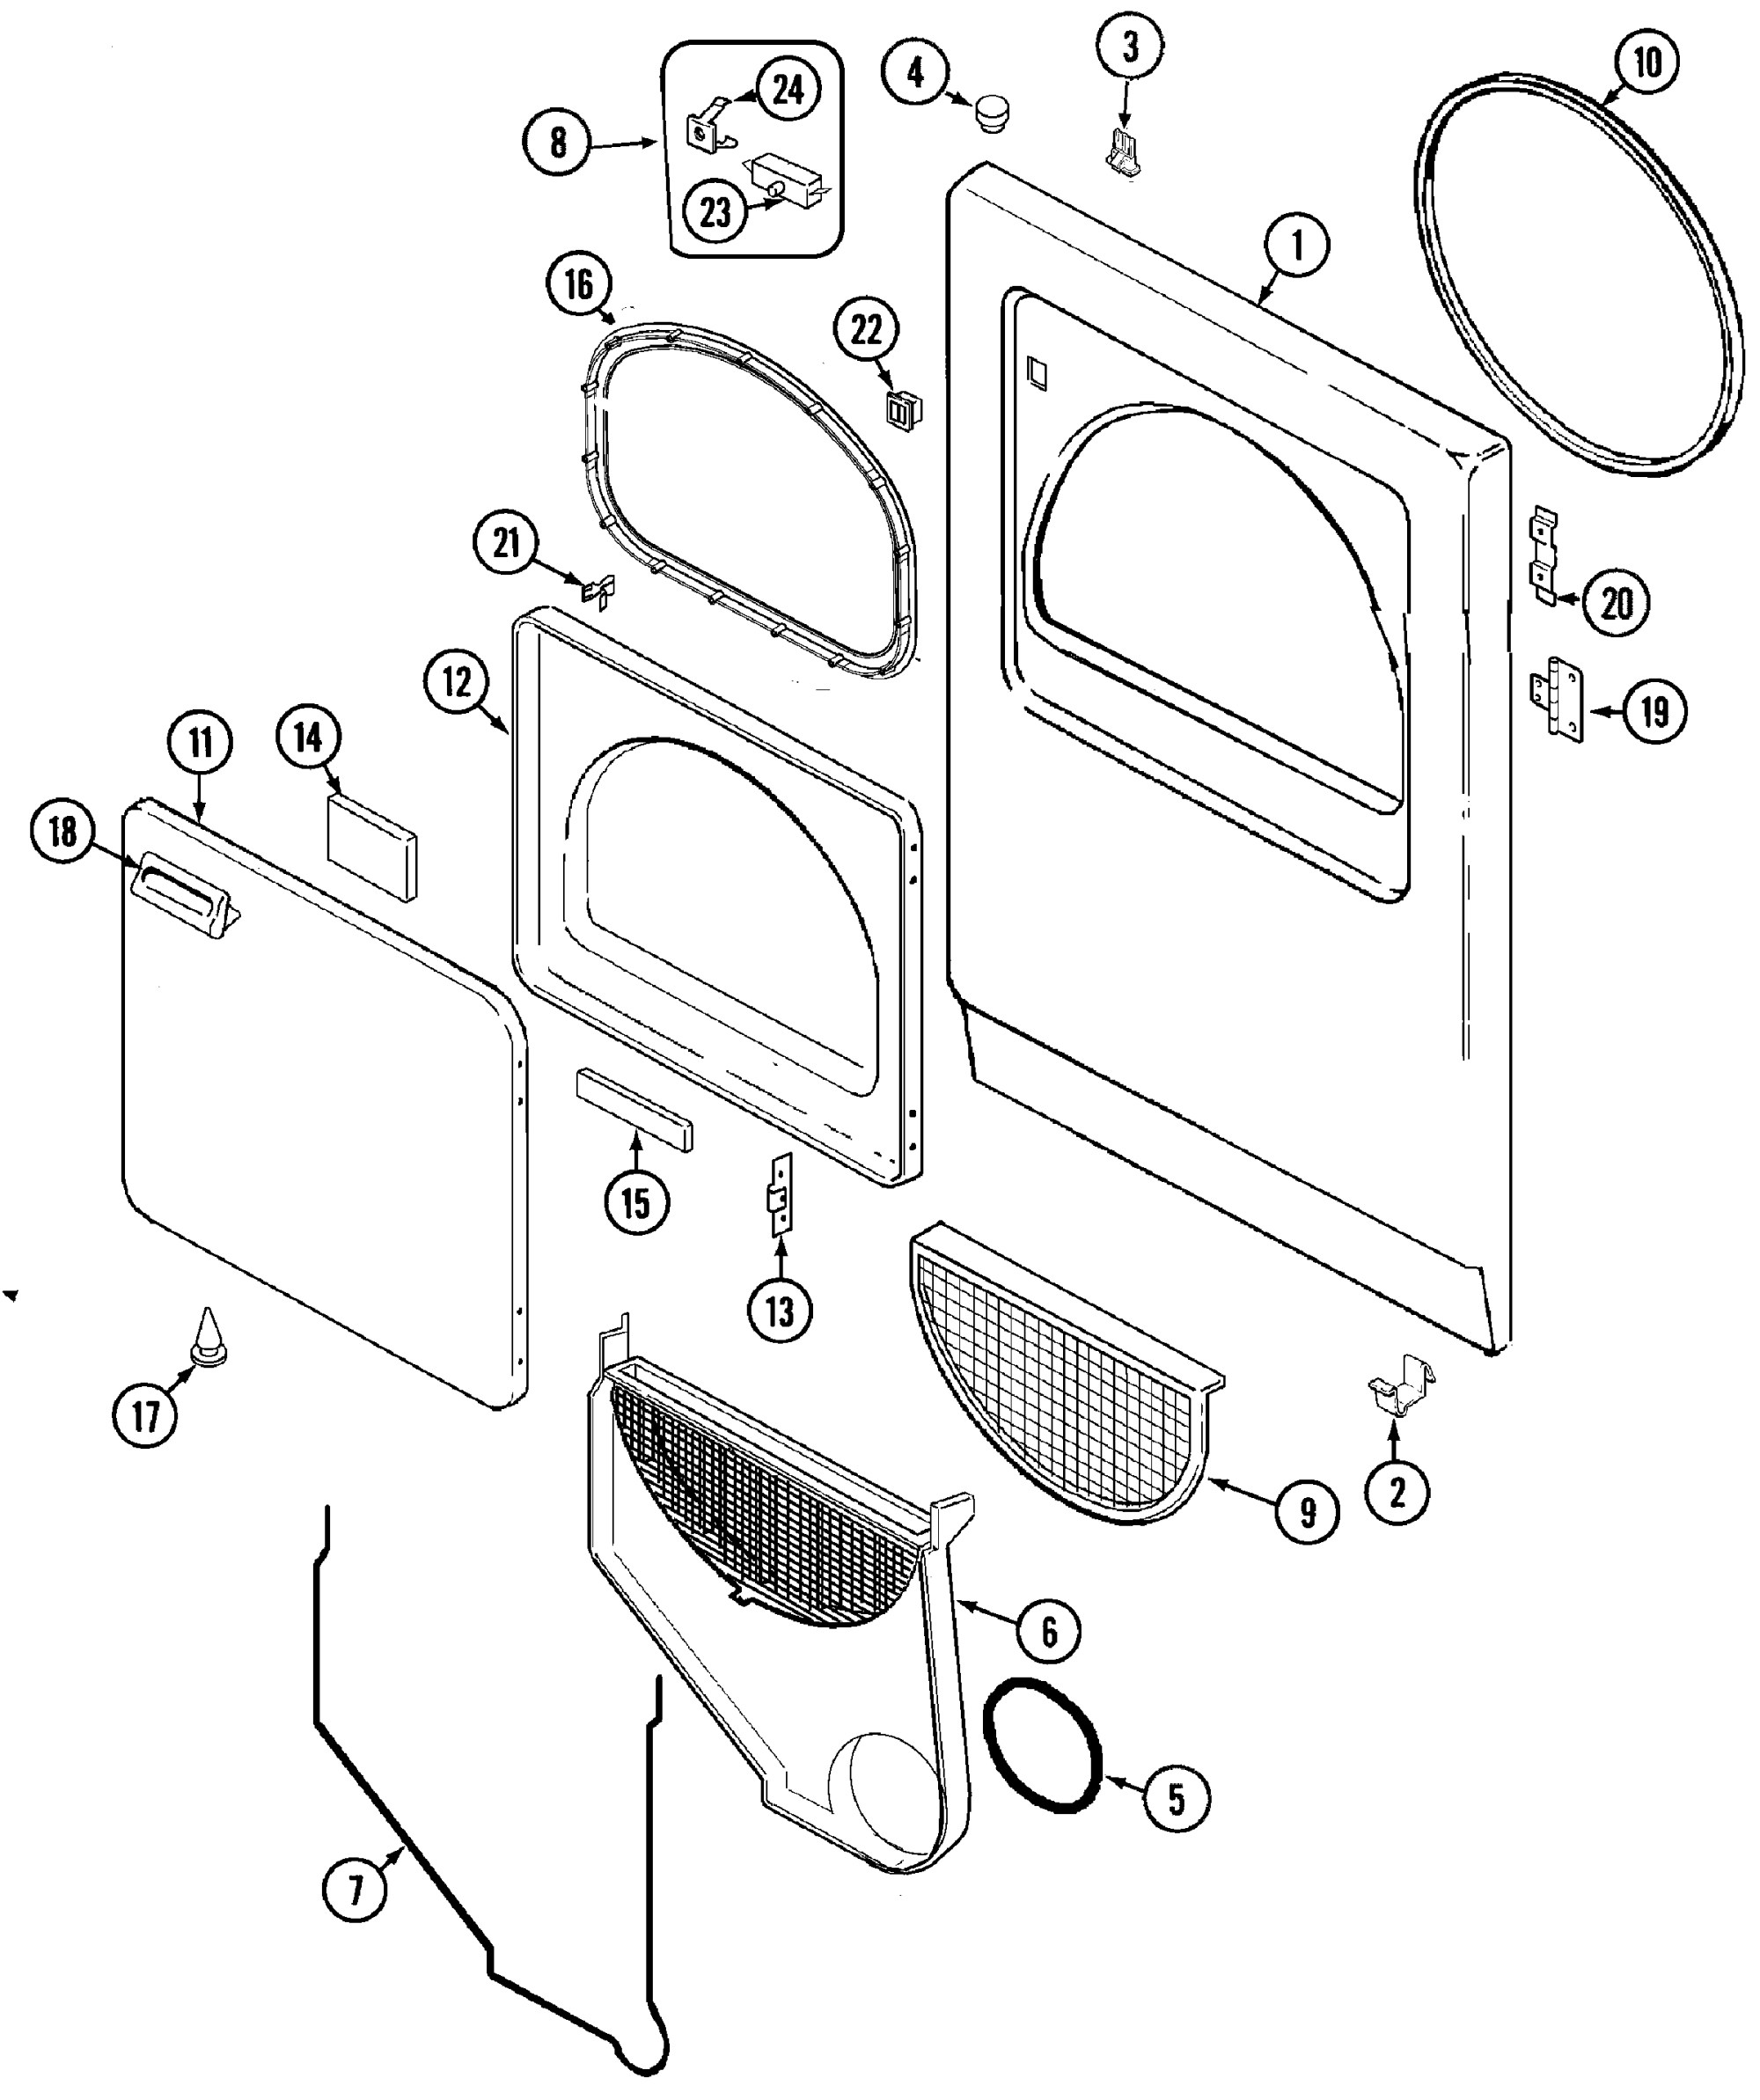 hight resolution of admiral dryer wiring diagram download admiral dryer parts diagram 19 e